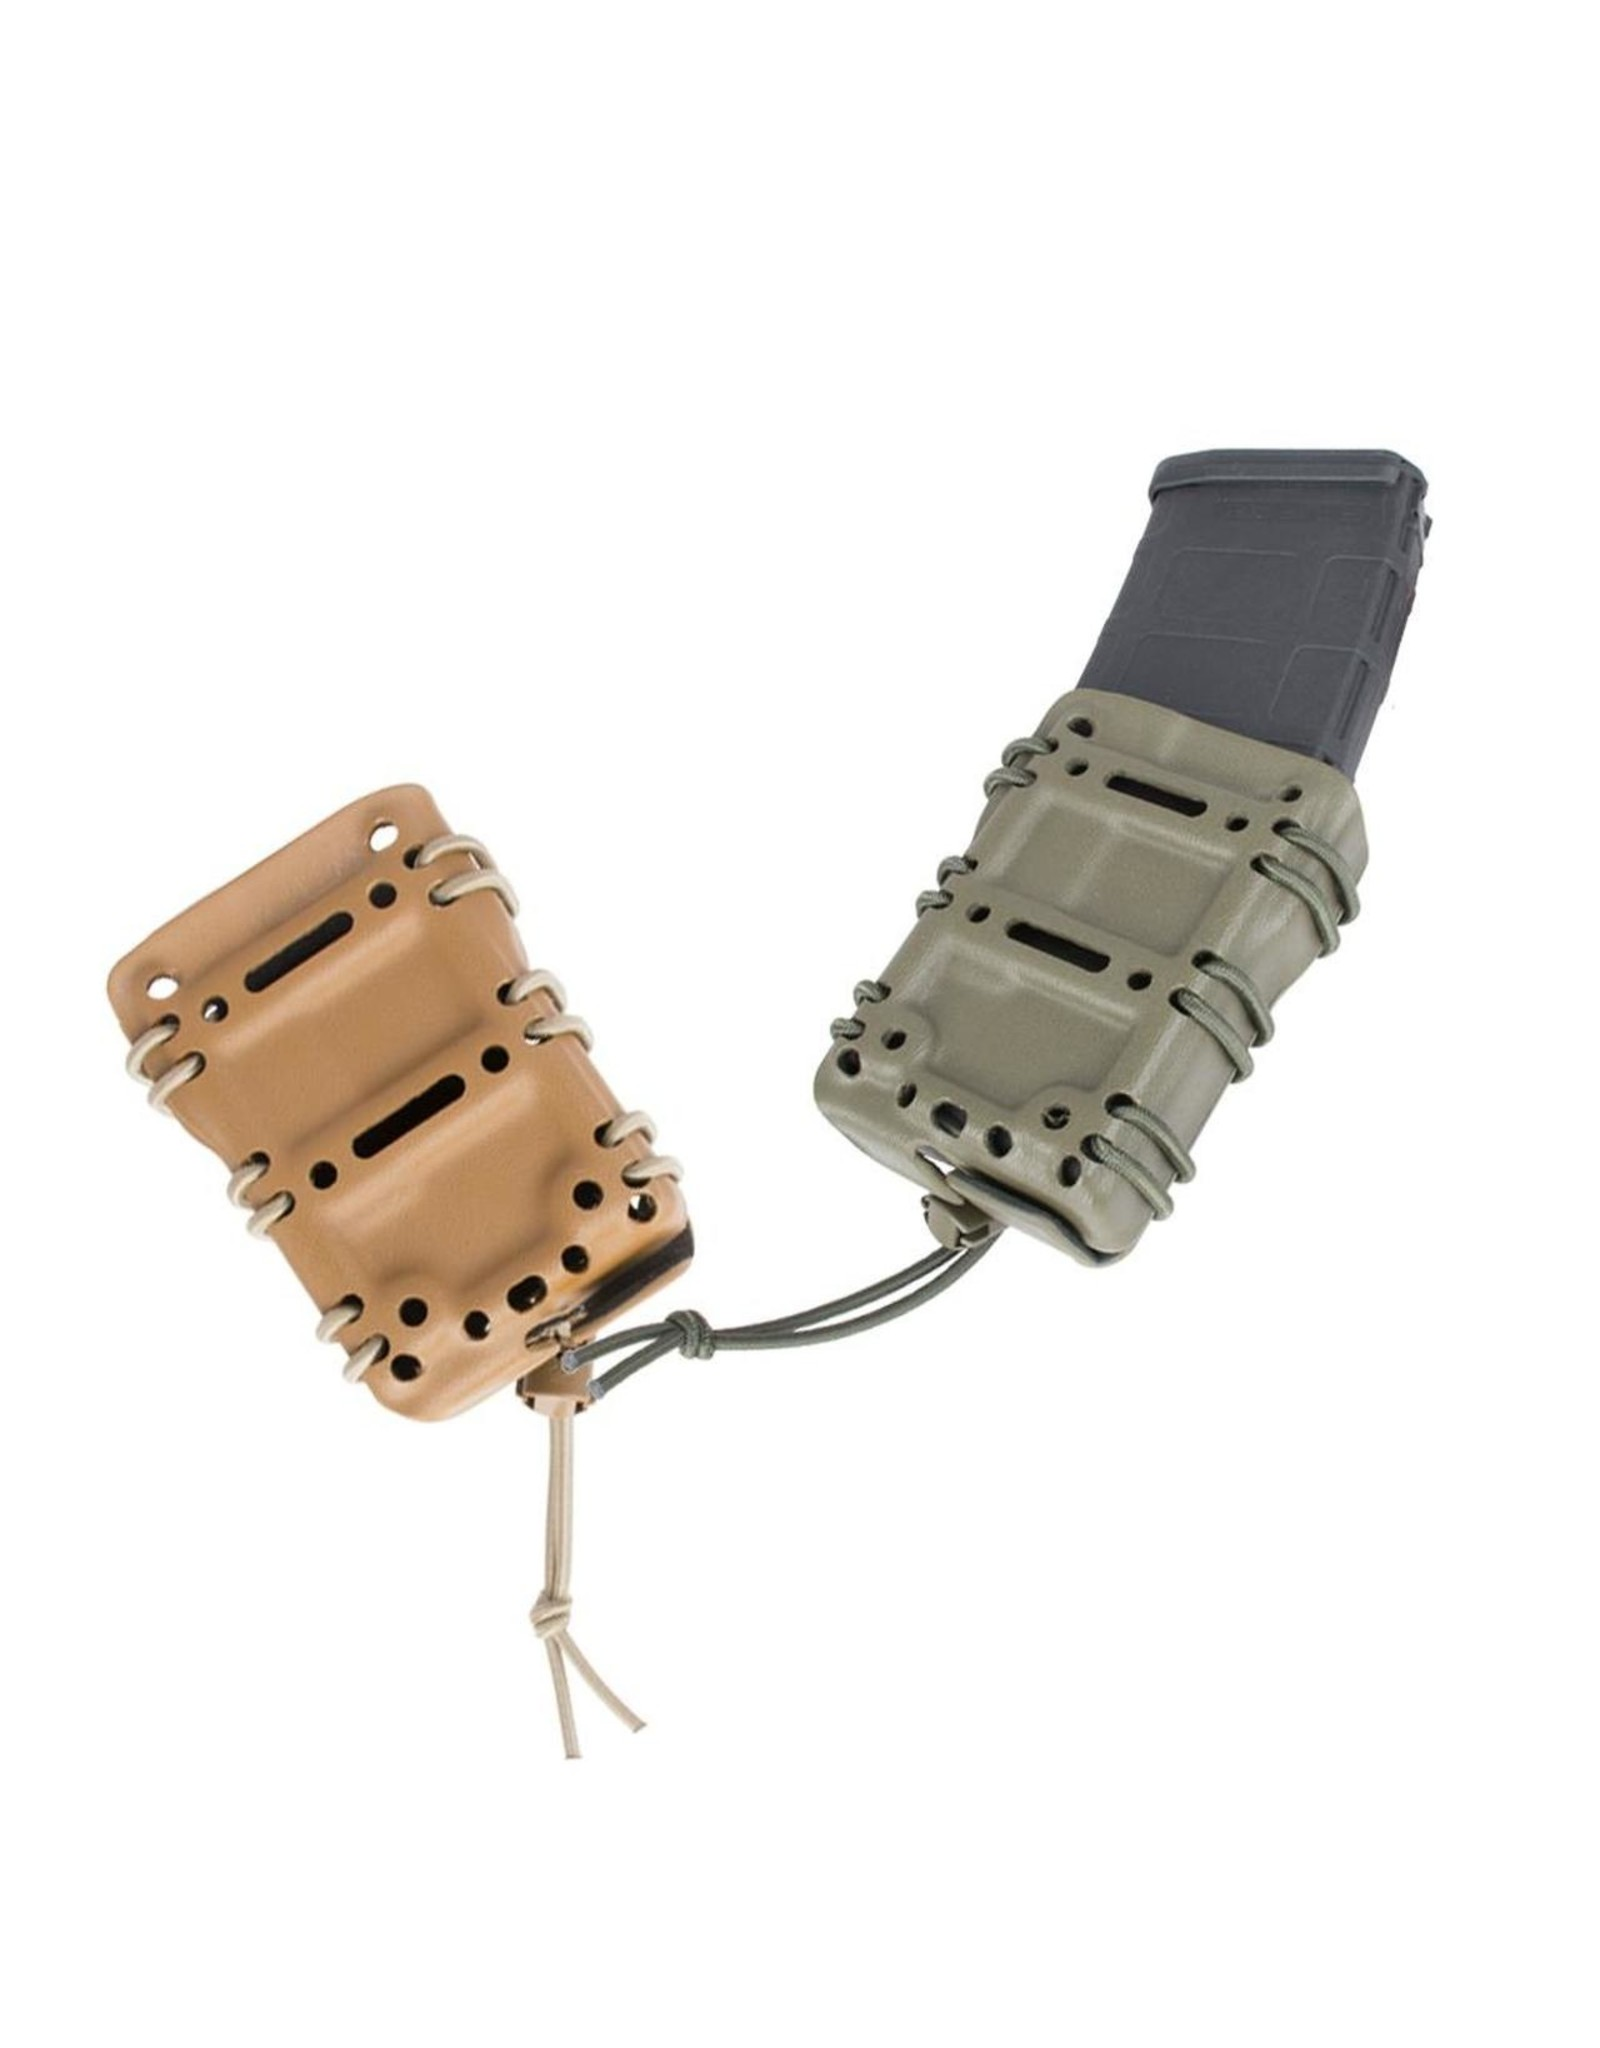 G-CODE G-CODE SCORPION RIFLE MAG CARRIER